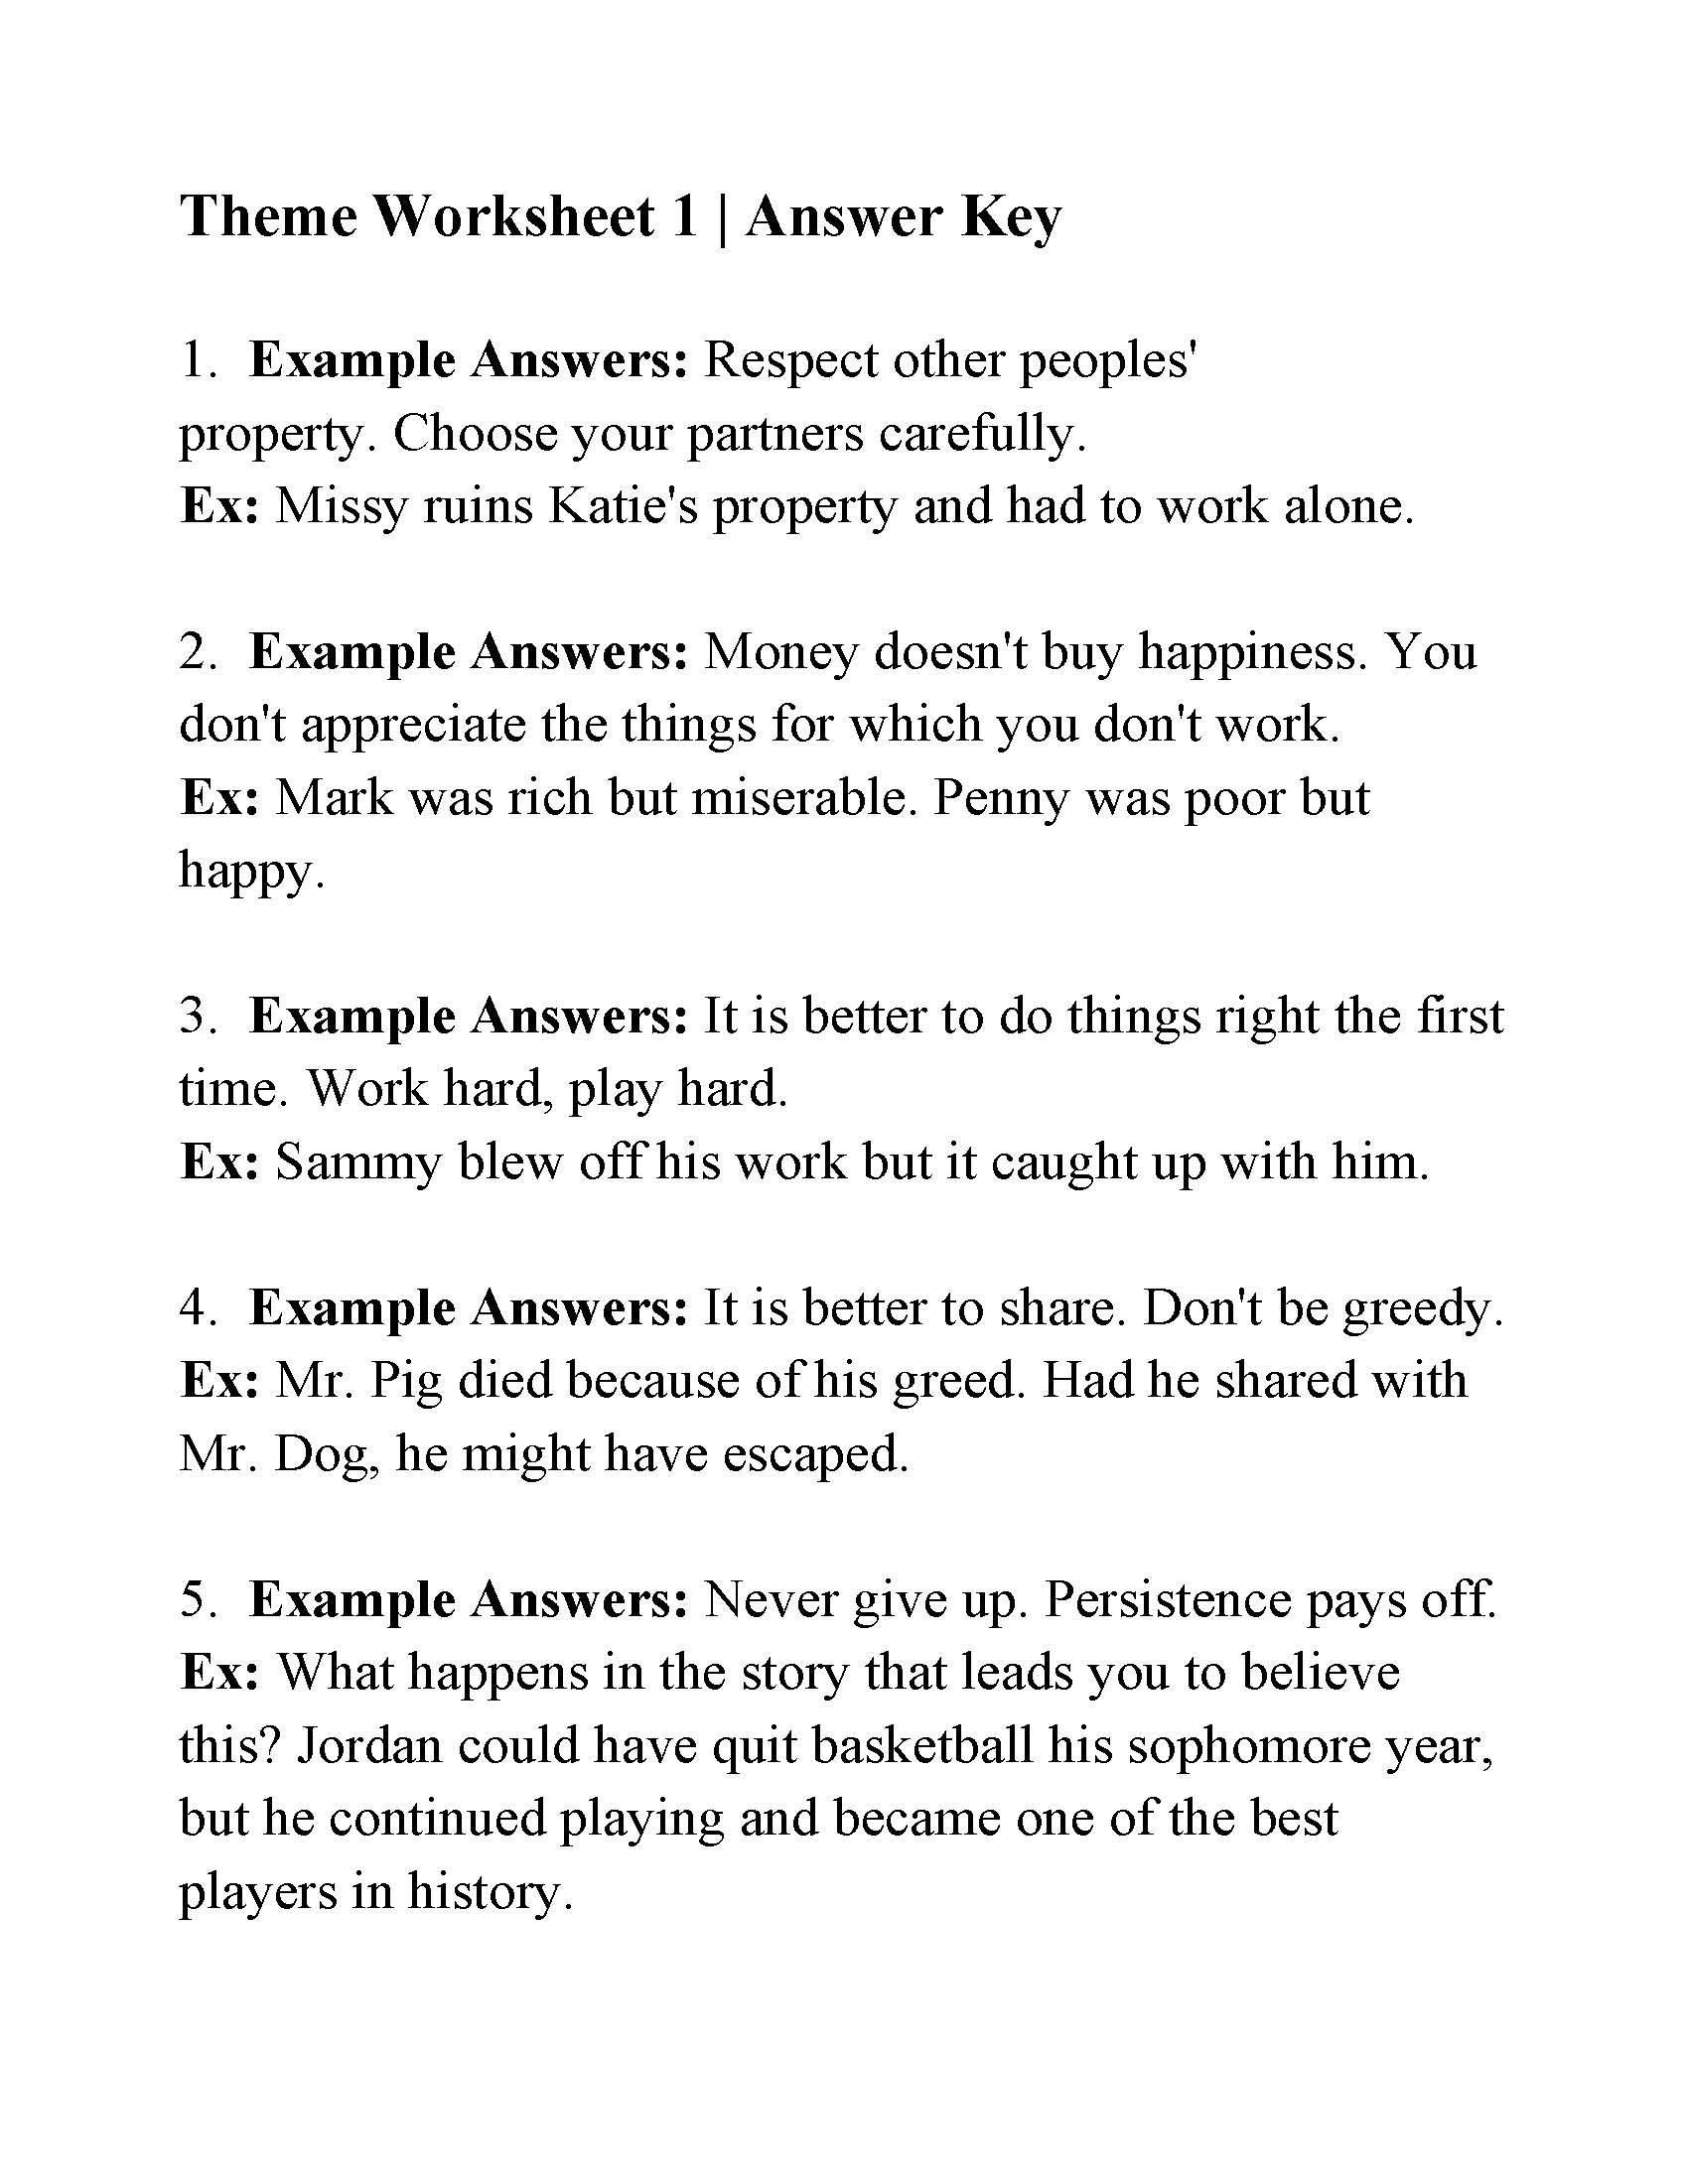 Theme Worksheets Middle School Pdf This is the Answer Key for the theme Worksheet 1